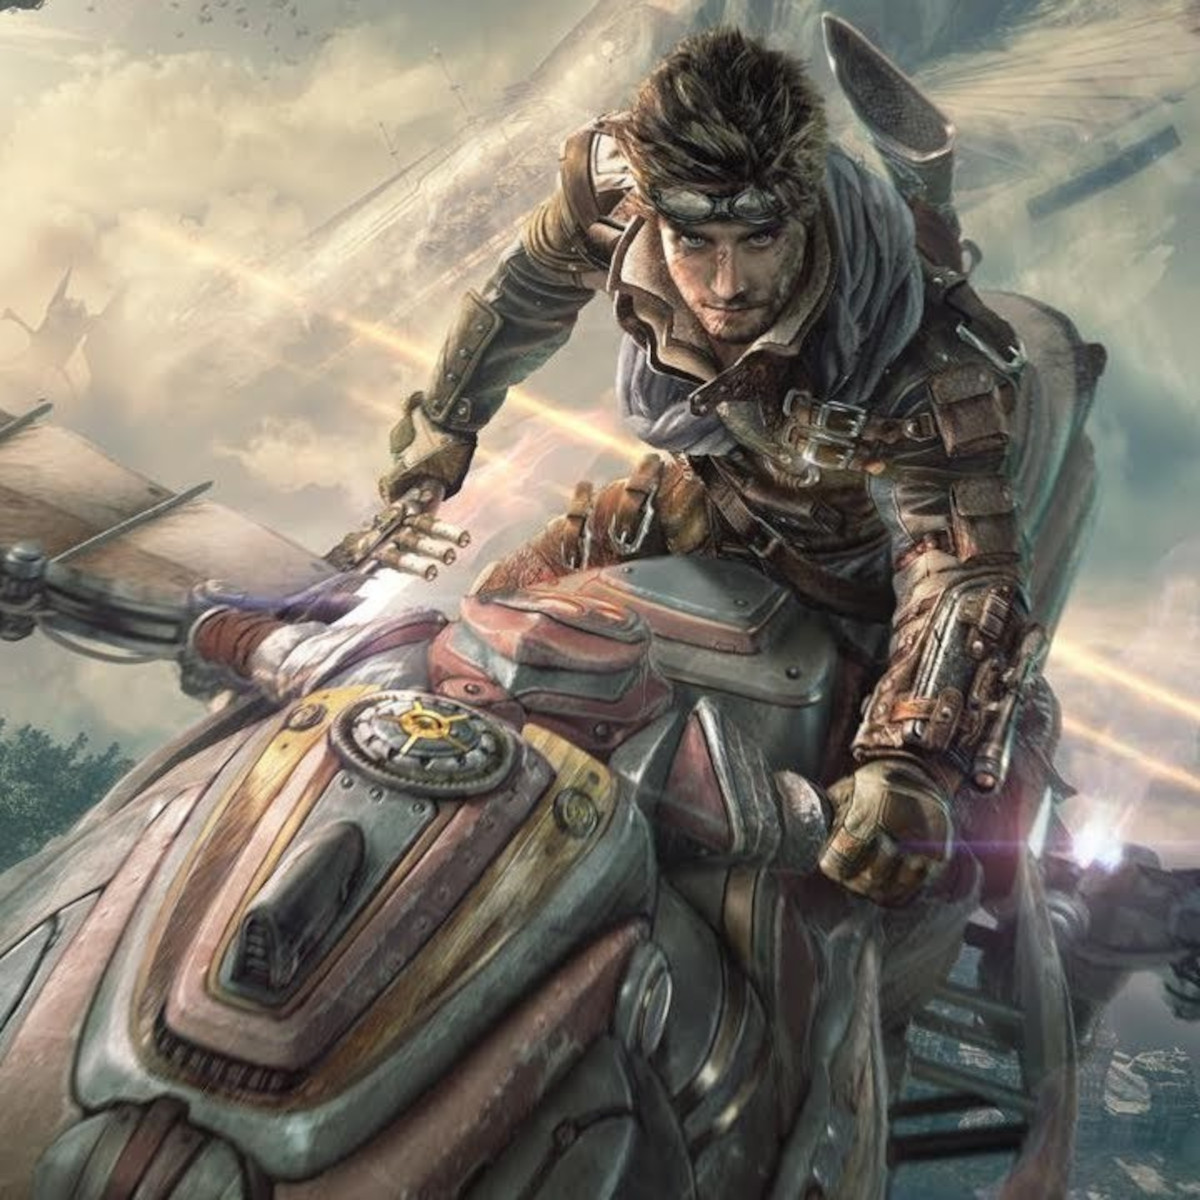 5 Best Dressed Male Steampunk Characters in Games